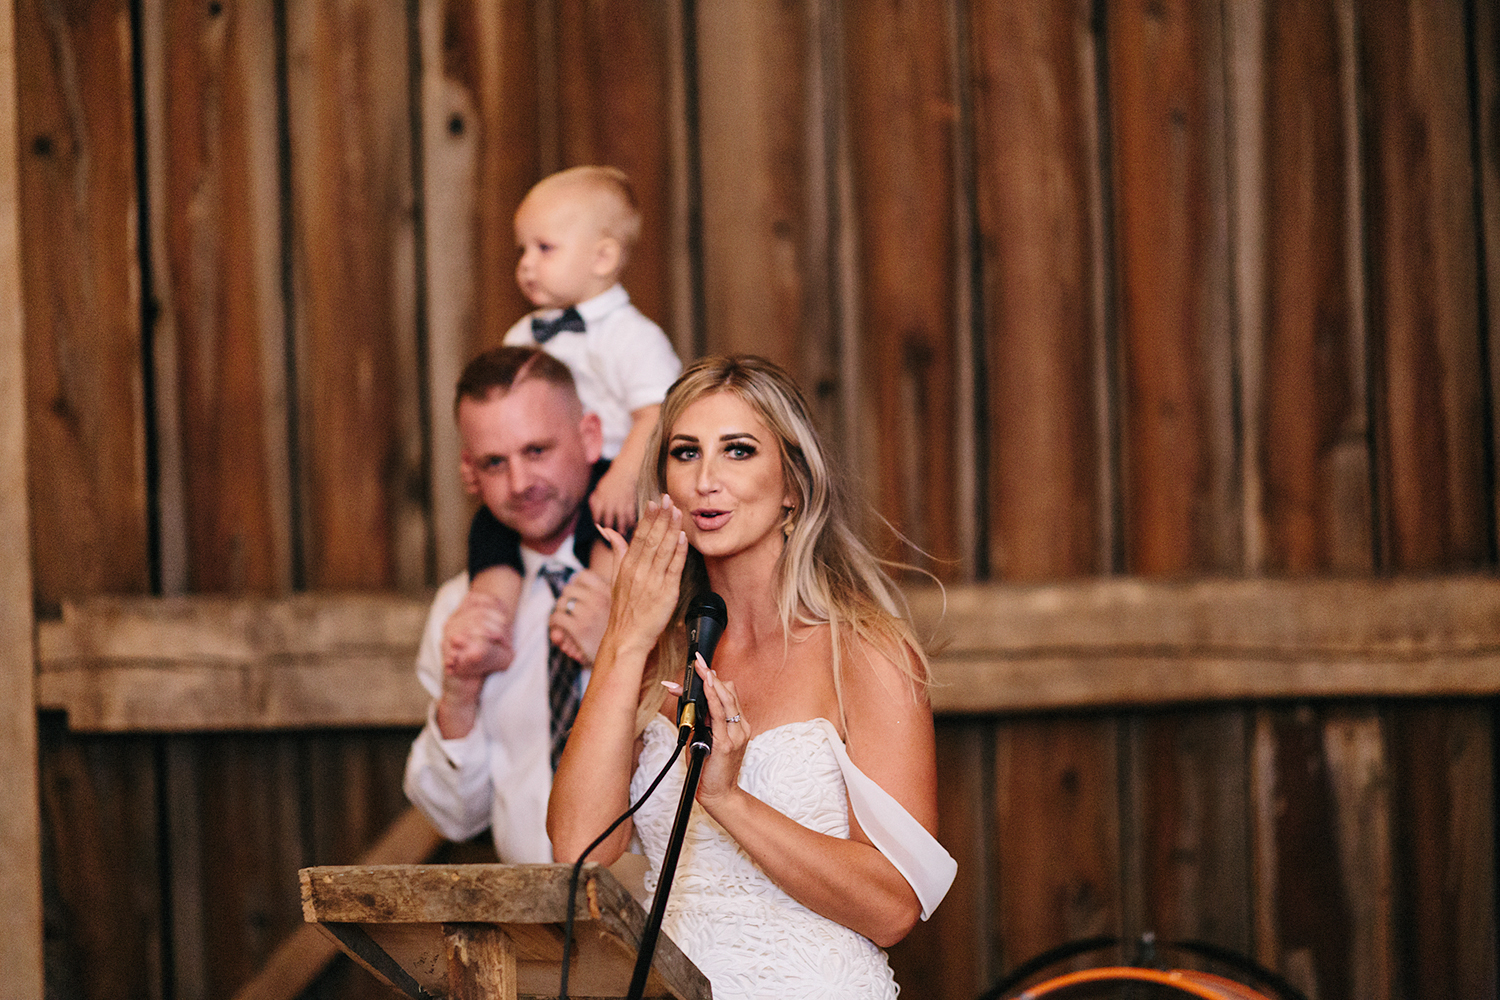 Documentary-Wedding-Photographers-in-Toronto-Candid-Natural-Dowswell-Barn-Wedding-Rustic-GTA-Muskoka-Farm-romantic-barn-golden-light-speeches-bride-and-groom-and-son-cute-candid-beautiful-memories.jpg